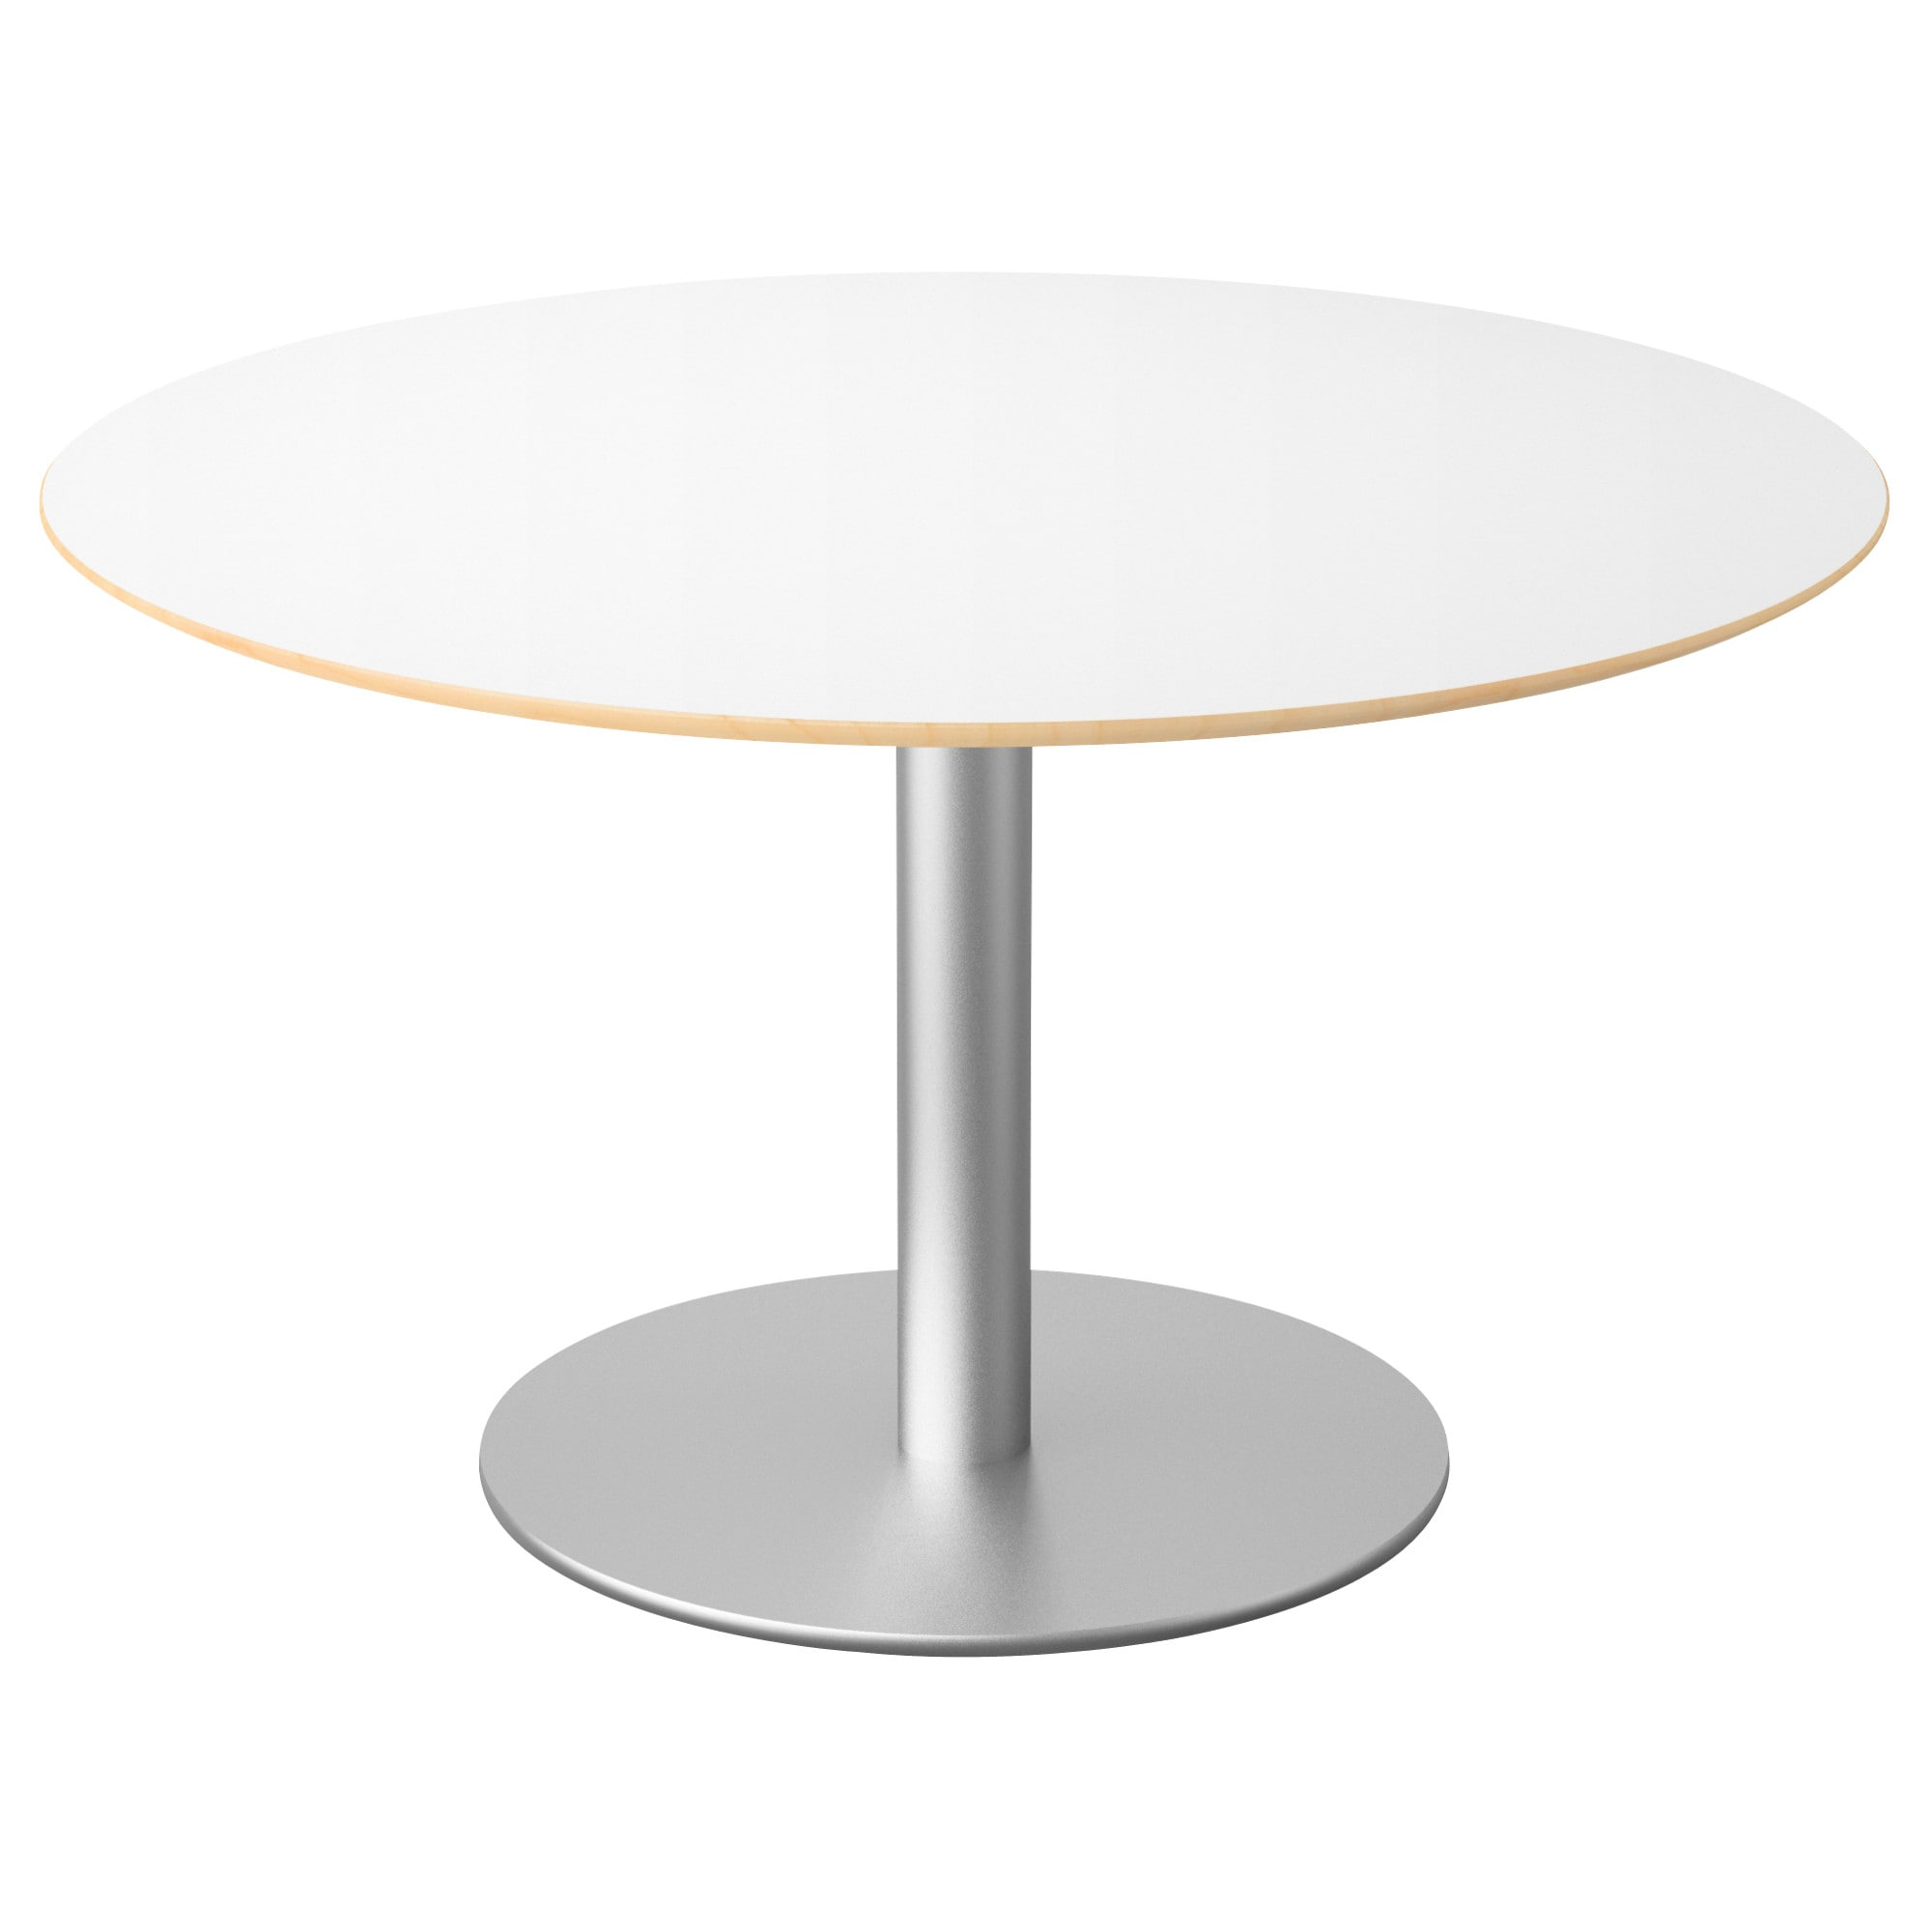 Table de jardin ronde ikea for Table ronde ikea